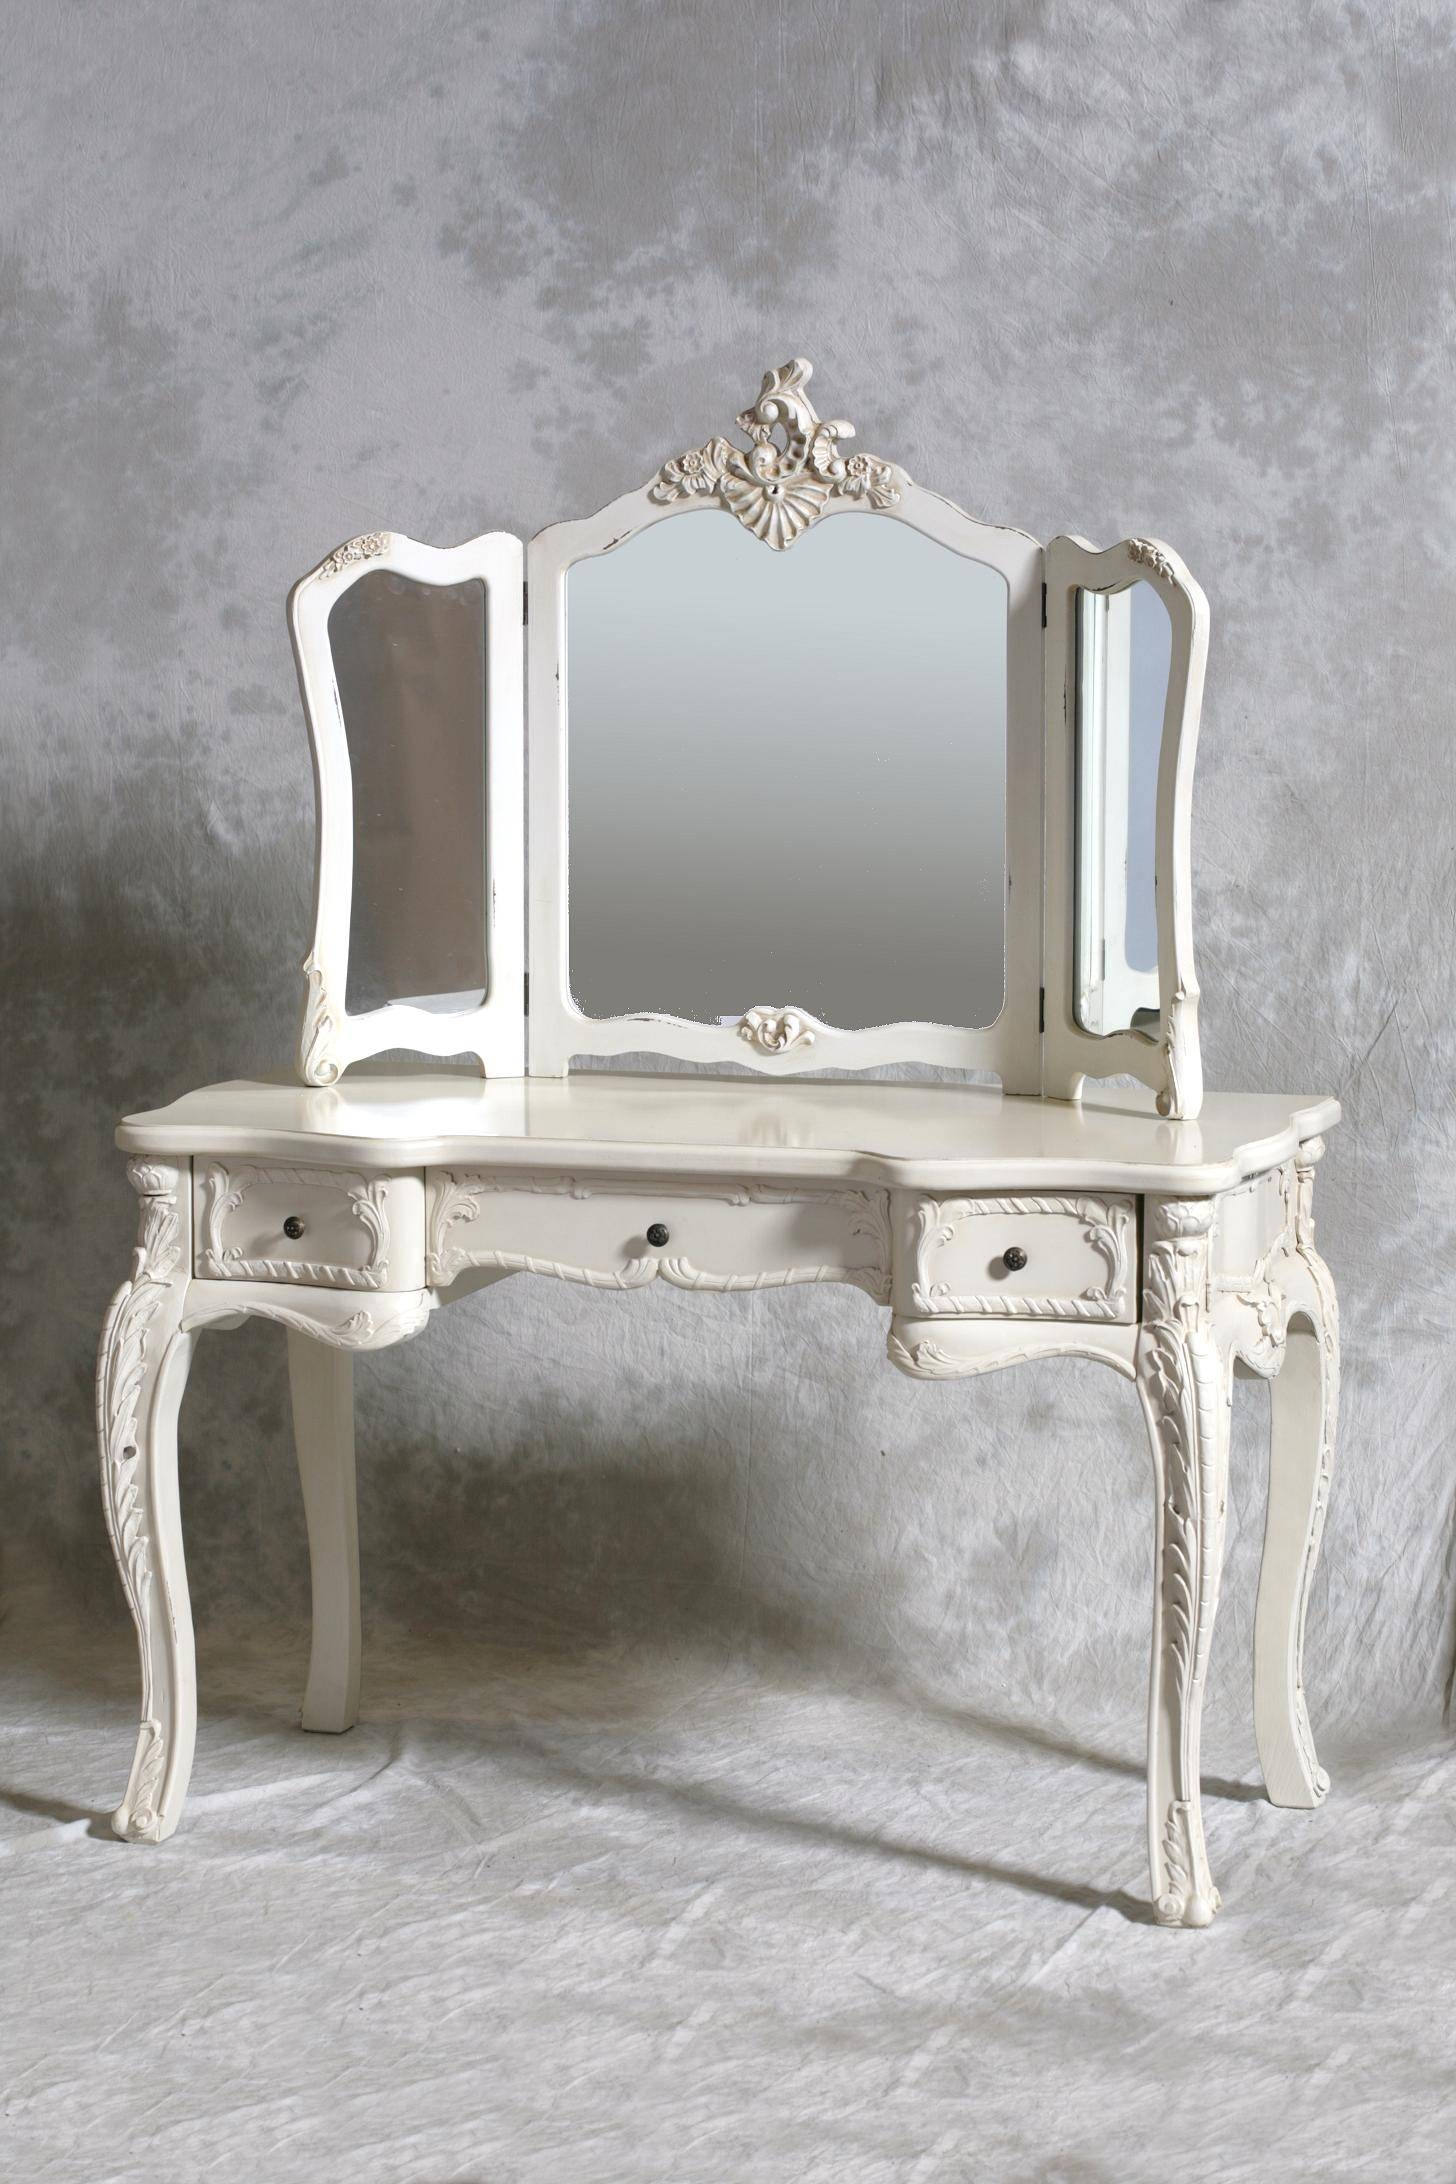 Furniture. Antique Vanities With Mirror For Glamorous Interior. Nu throughout Buy Vintage Mirrors (Image 12 of 25)